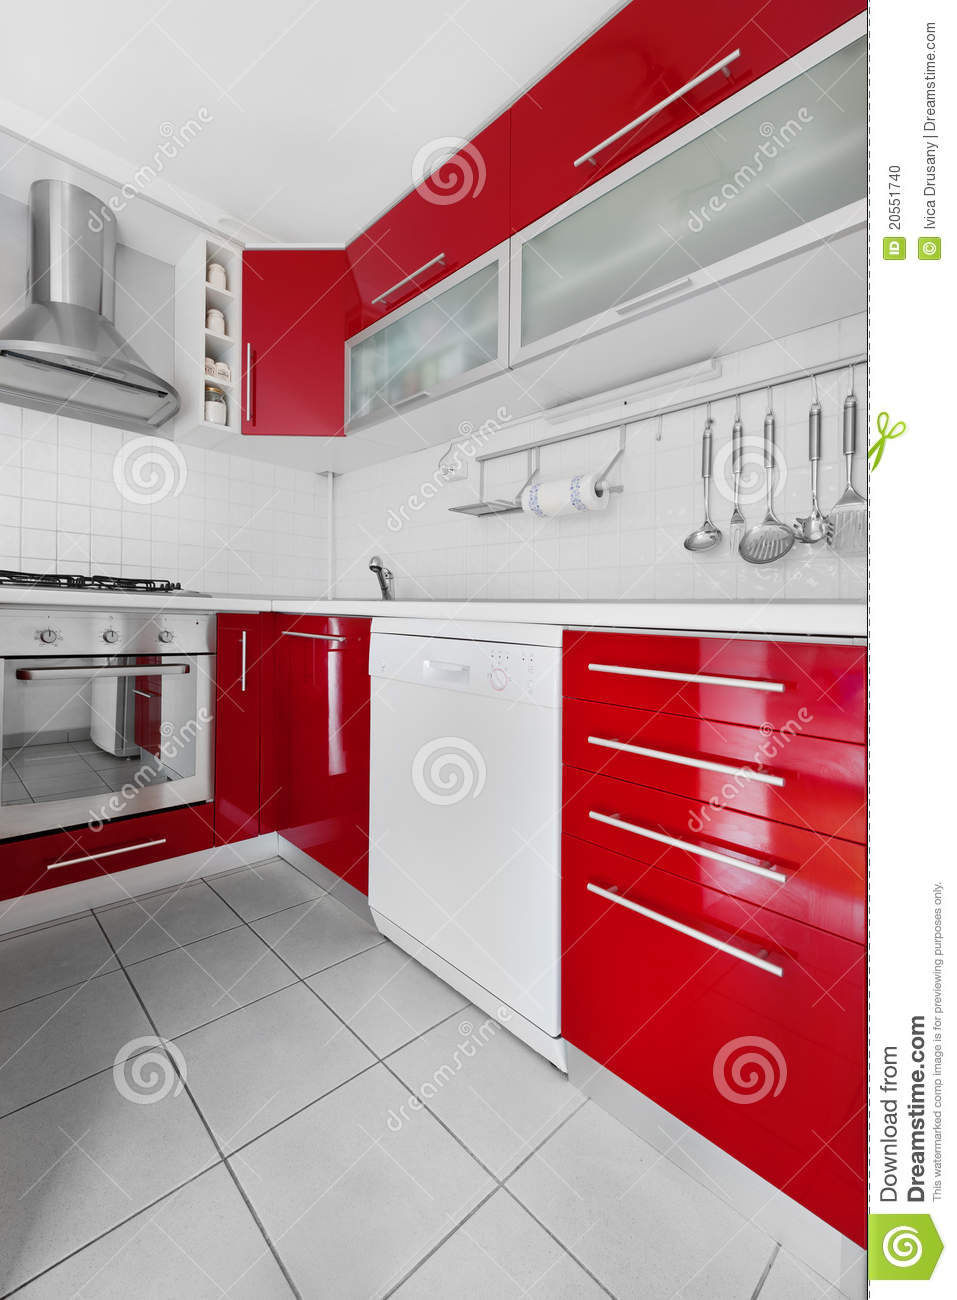 Cuisine rouge et blanche moderne photo stock image 20551740 for Cuisine blanche et rouge